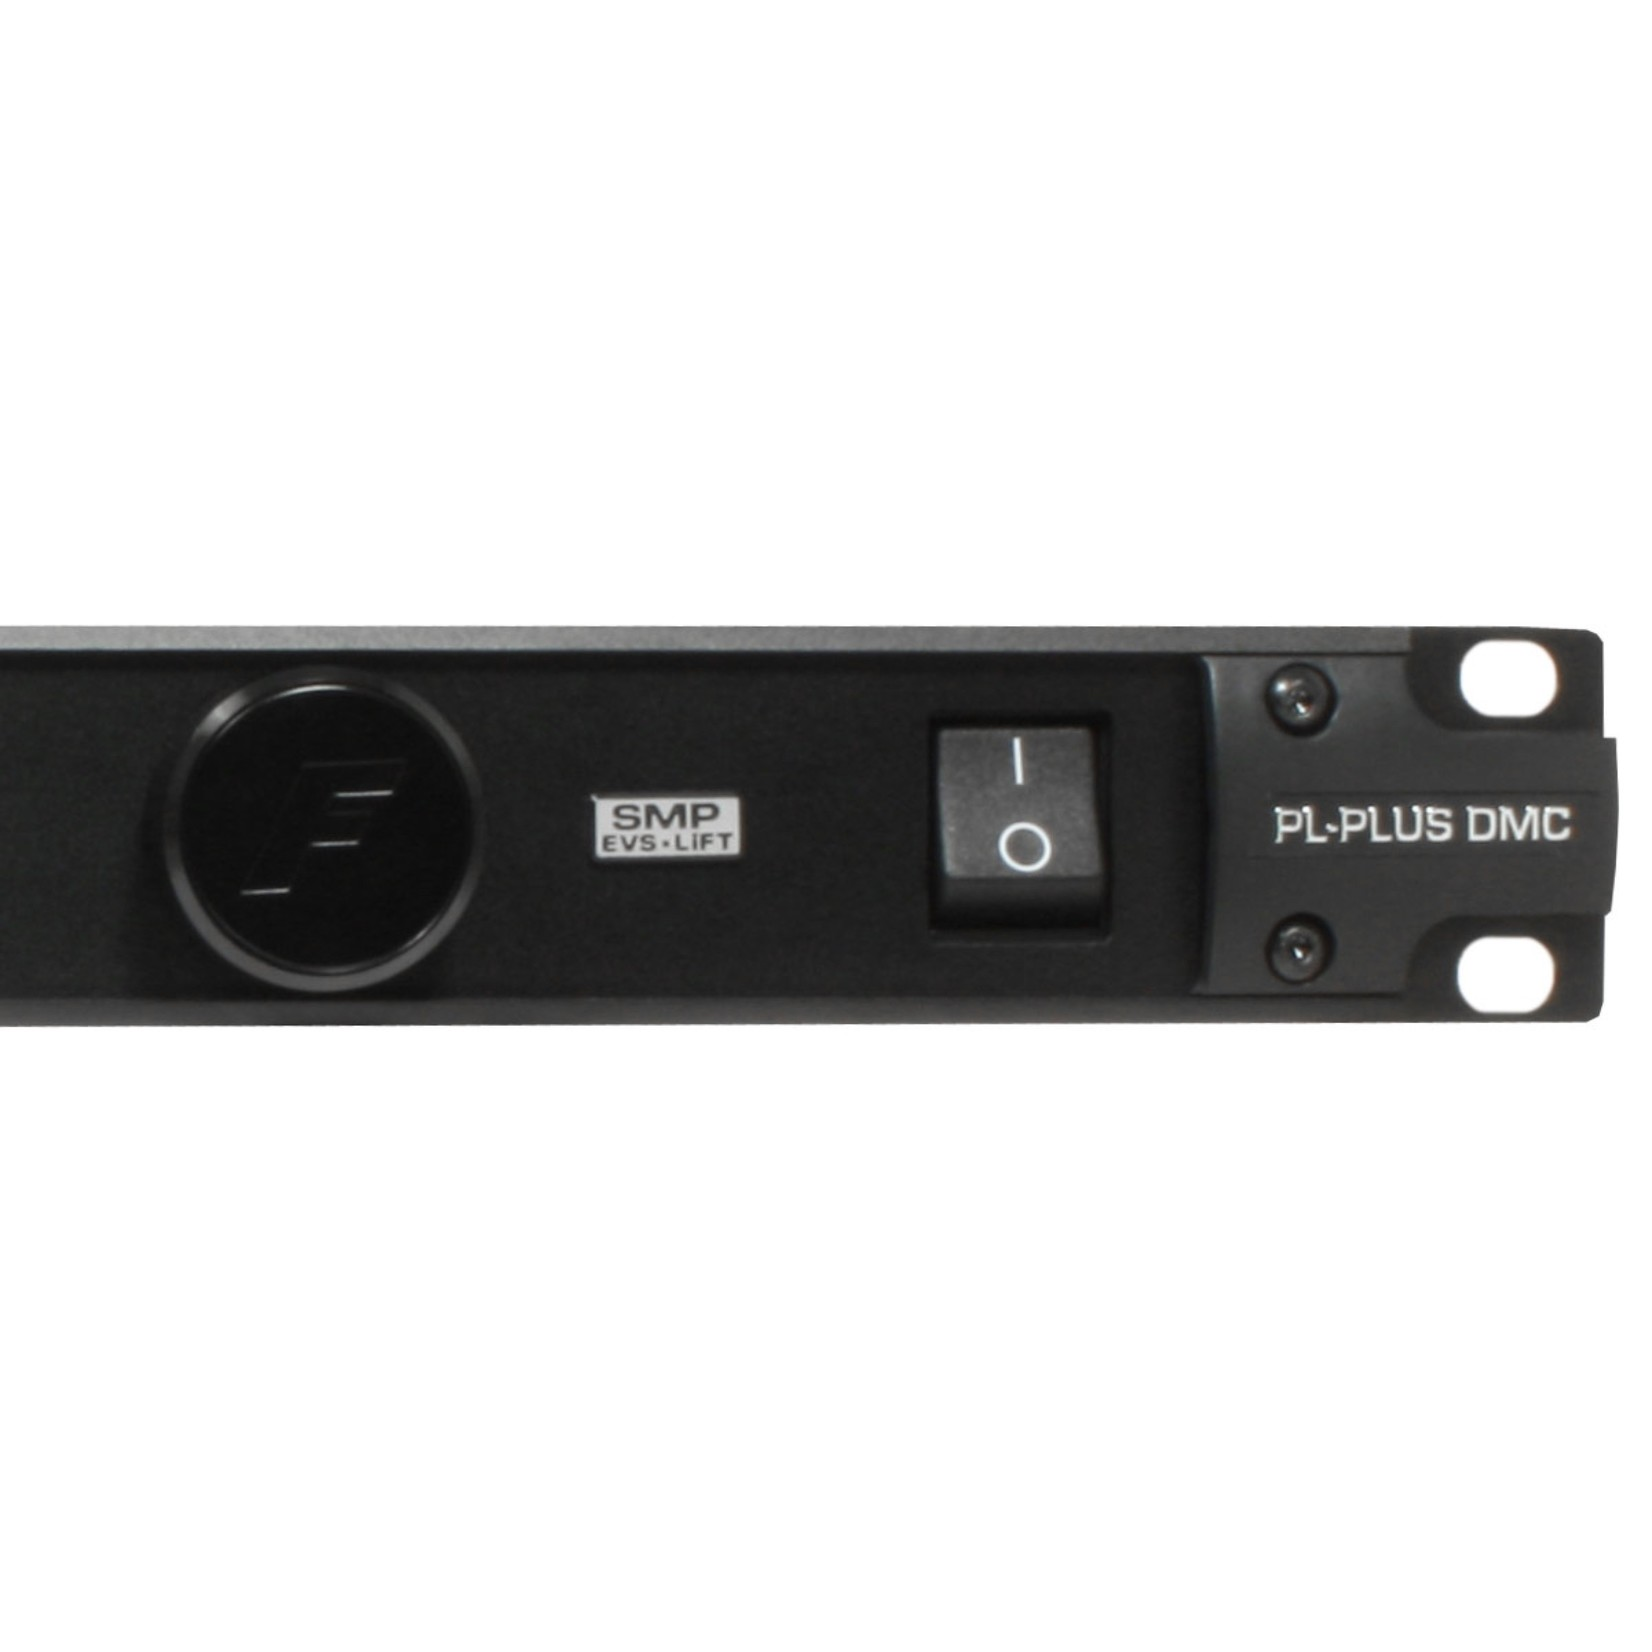 Furman Furman PL-PLUS DMC Classic Series 15A Power Conditioner with Volt / Amp Meters